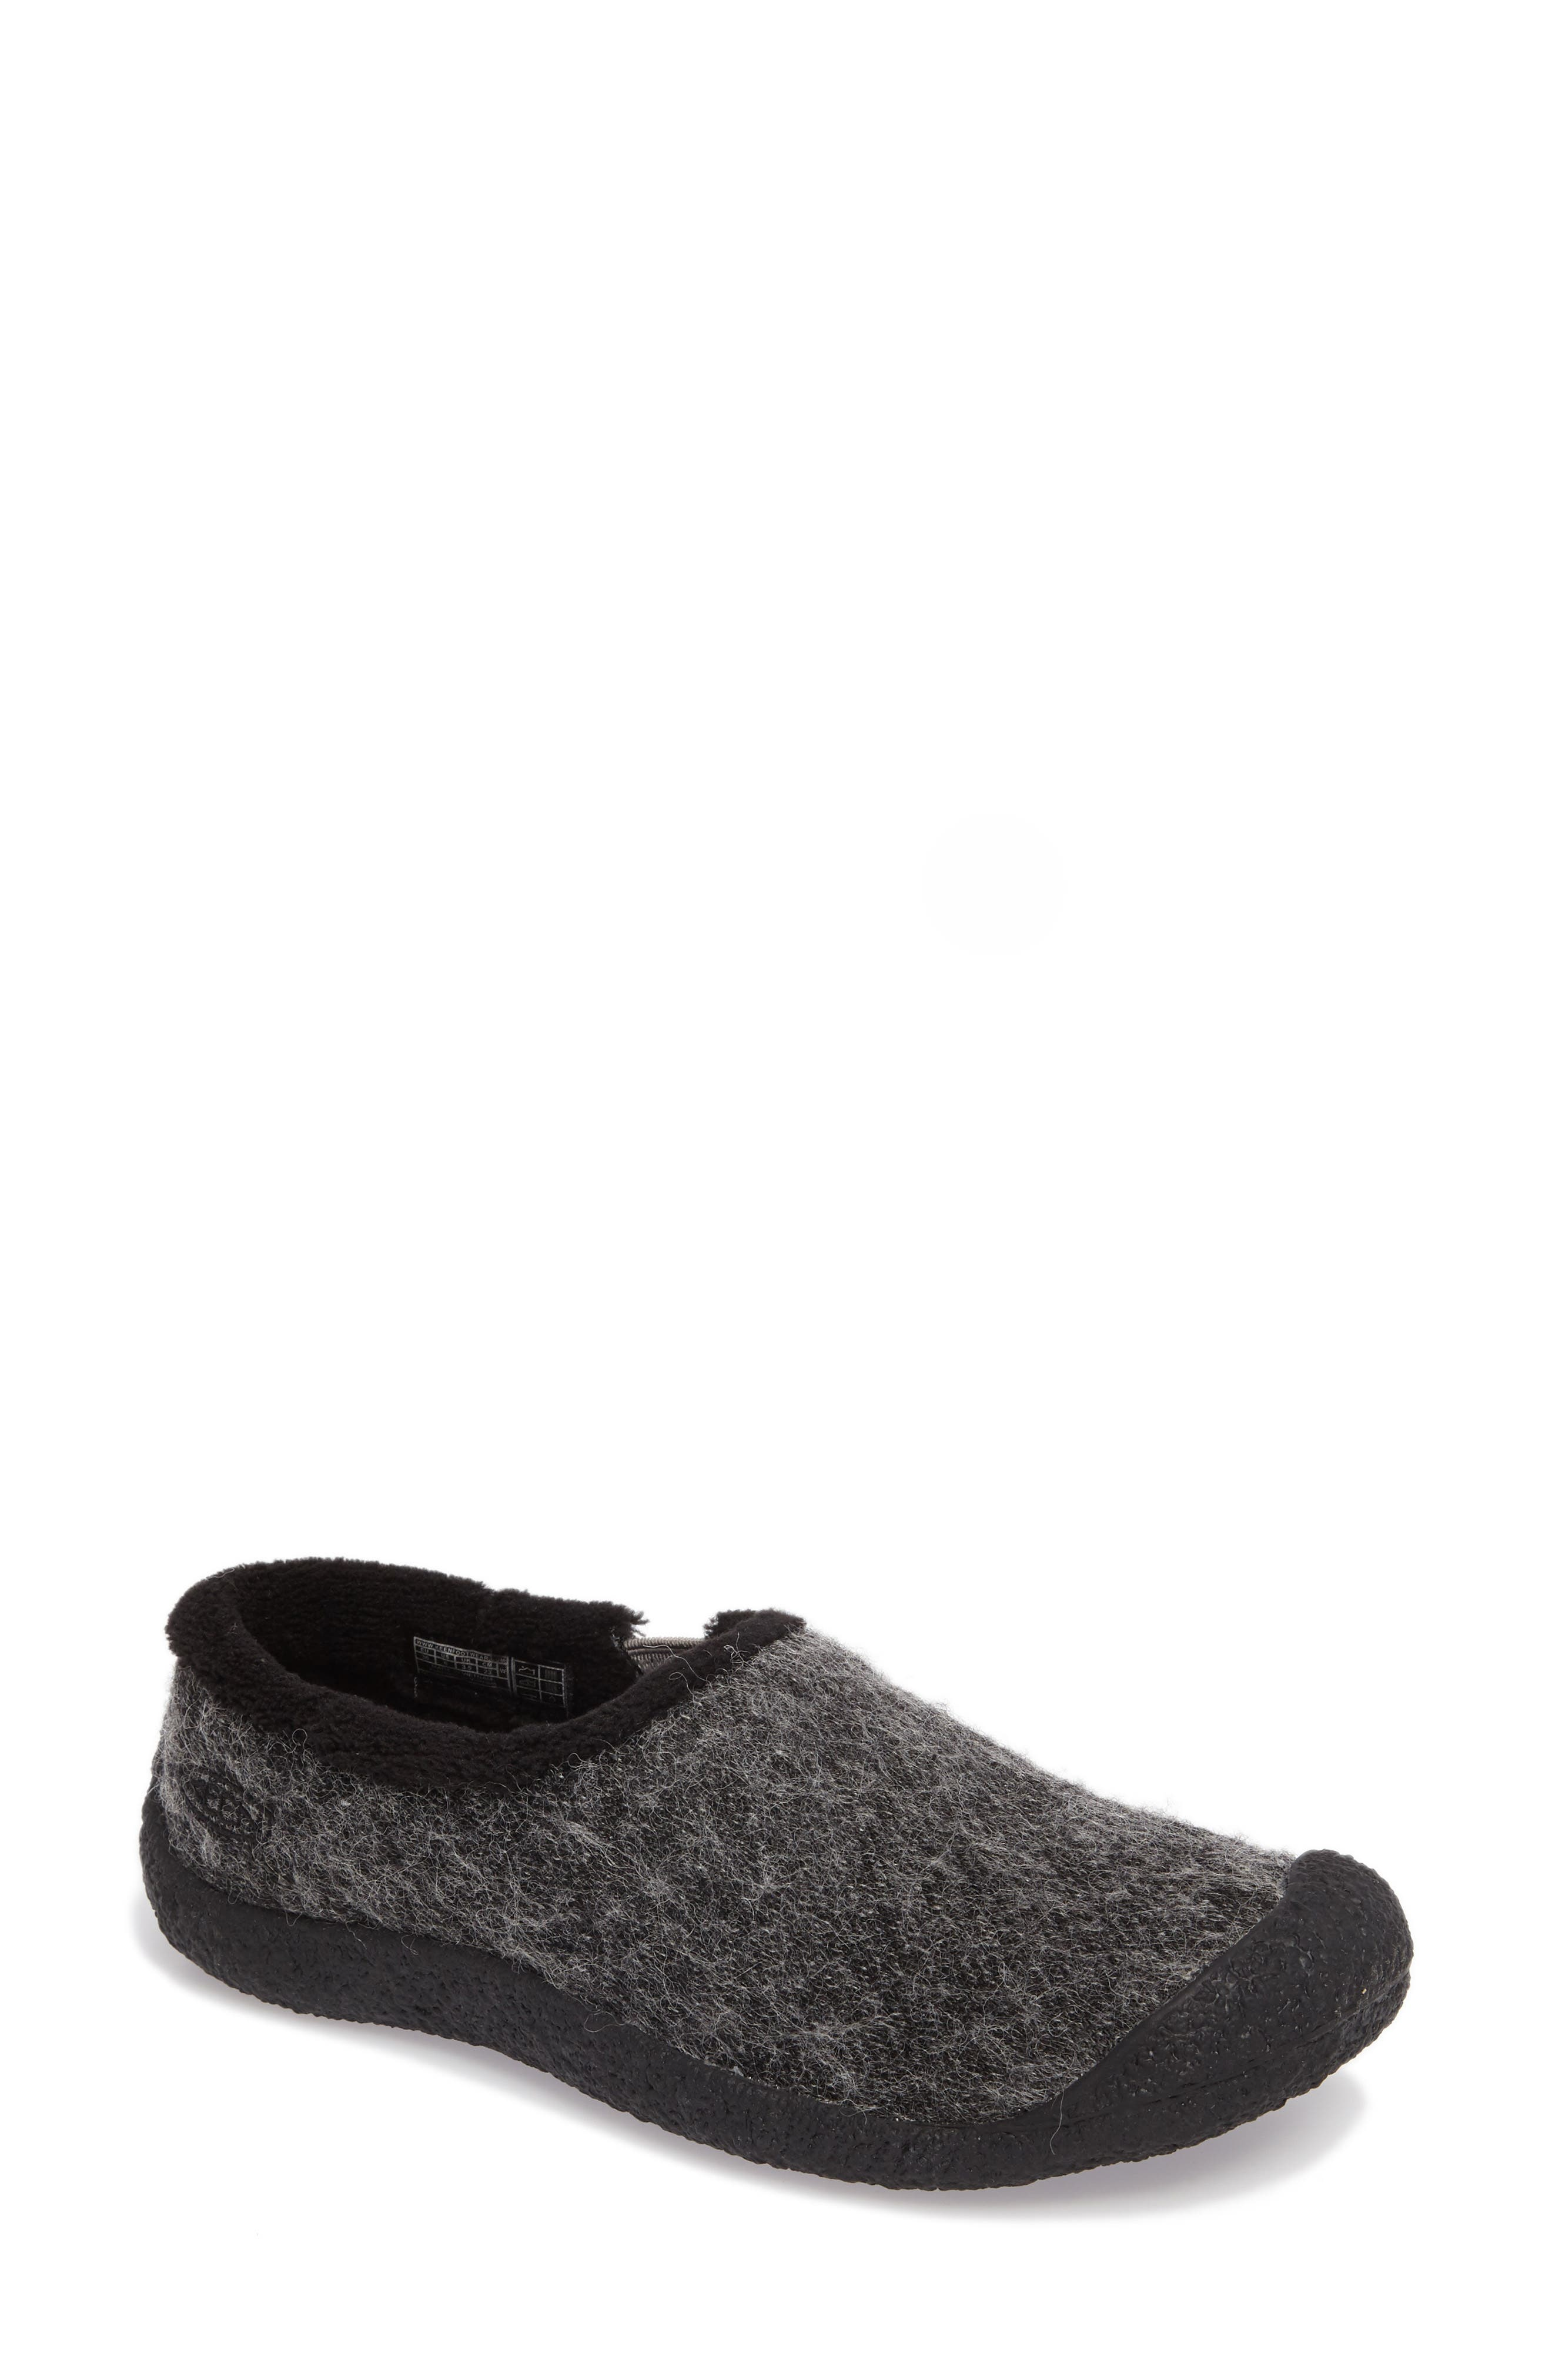 Howser Round Toe Wool Slip-on,                             Main thumbnail 1, color,                             001